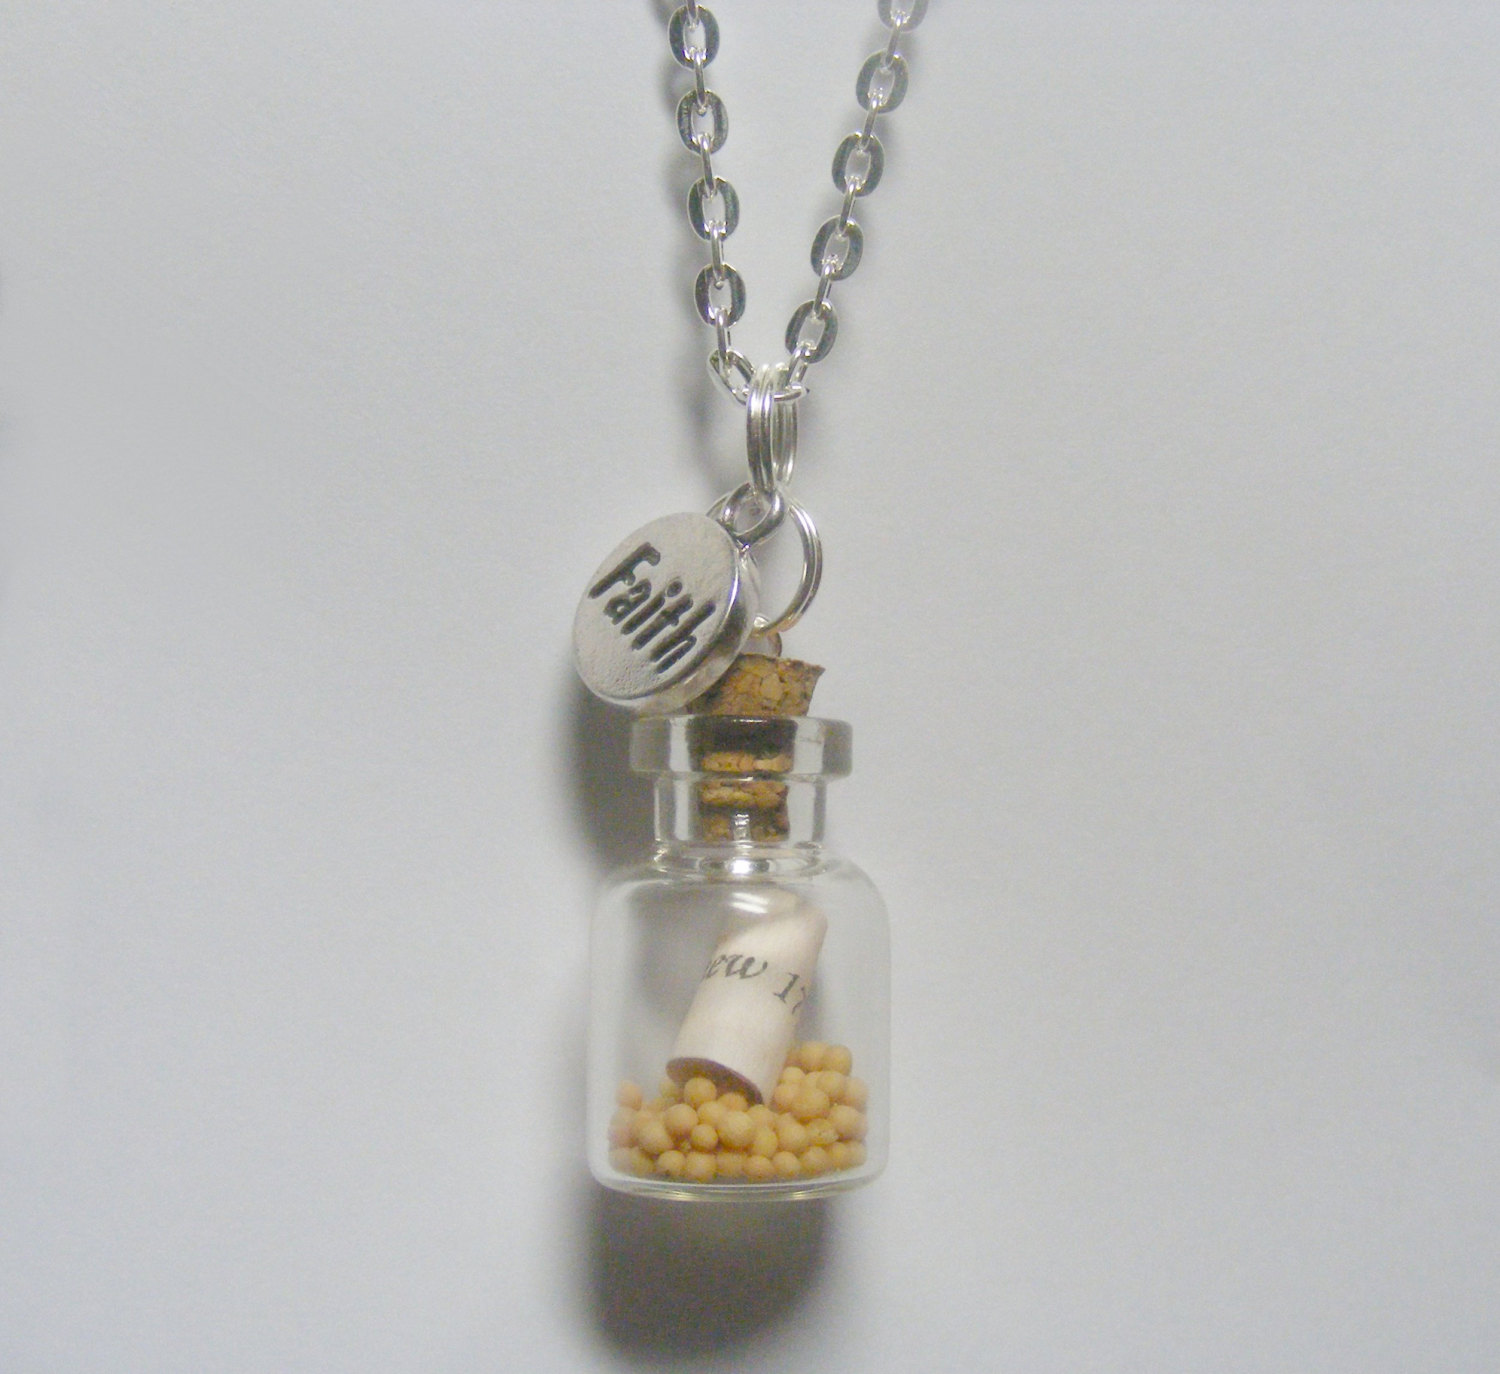 Faith mustard seed miniature bottle necklace miniature food jewelry faith mustard seed miniature bottle necklace miniature food jewelrymustard seed pendantchristian jewelryfaith pendantchristian necklace aloadofball Choice Image